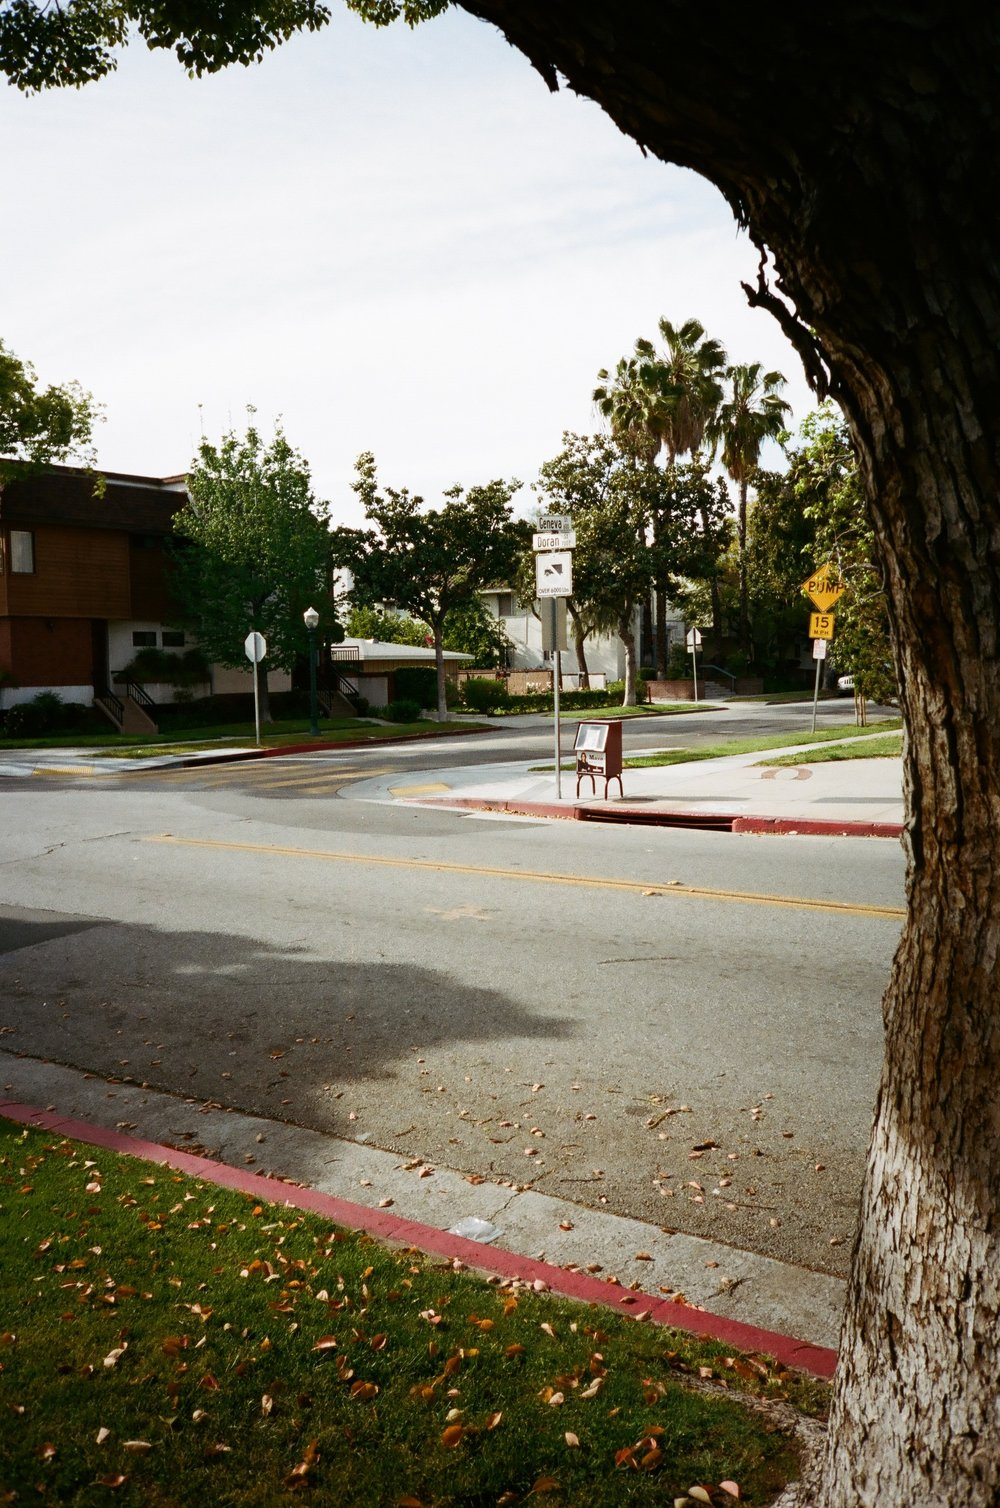 Glendale, Los Angeles County, California